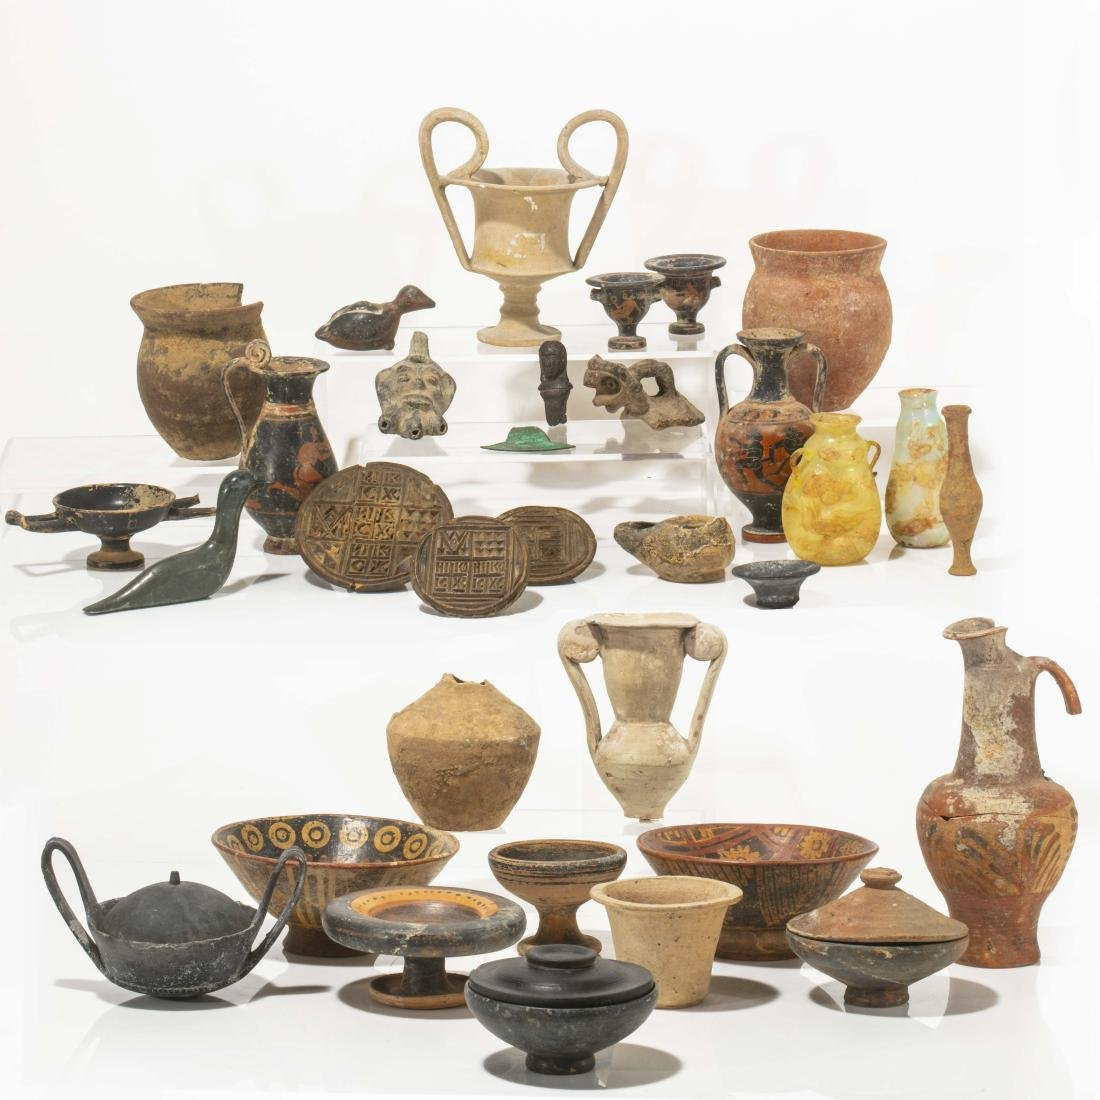 Ancient pottery, glass vessels & wood molds